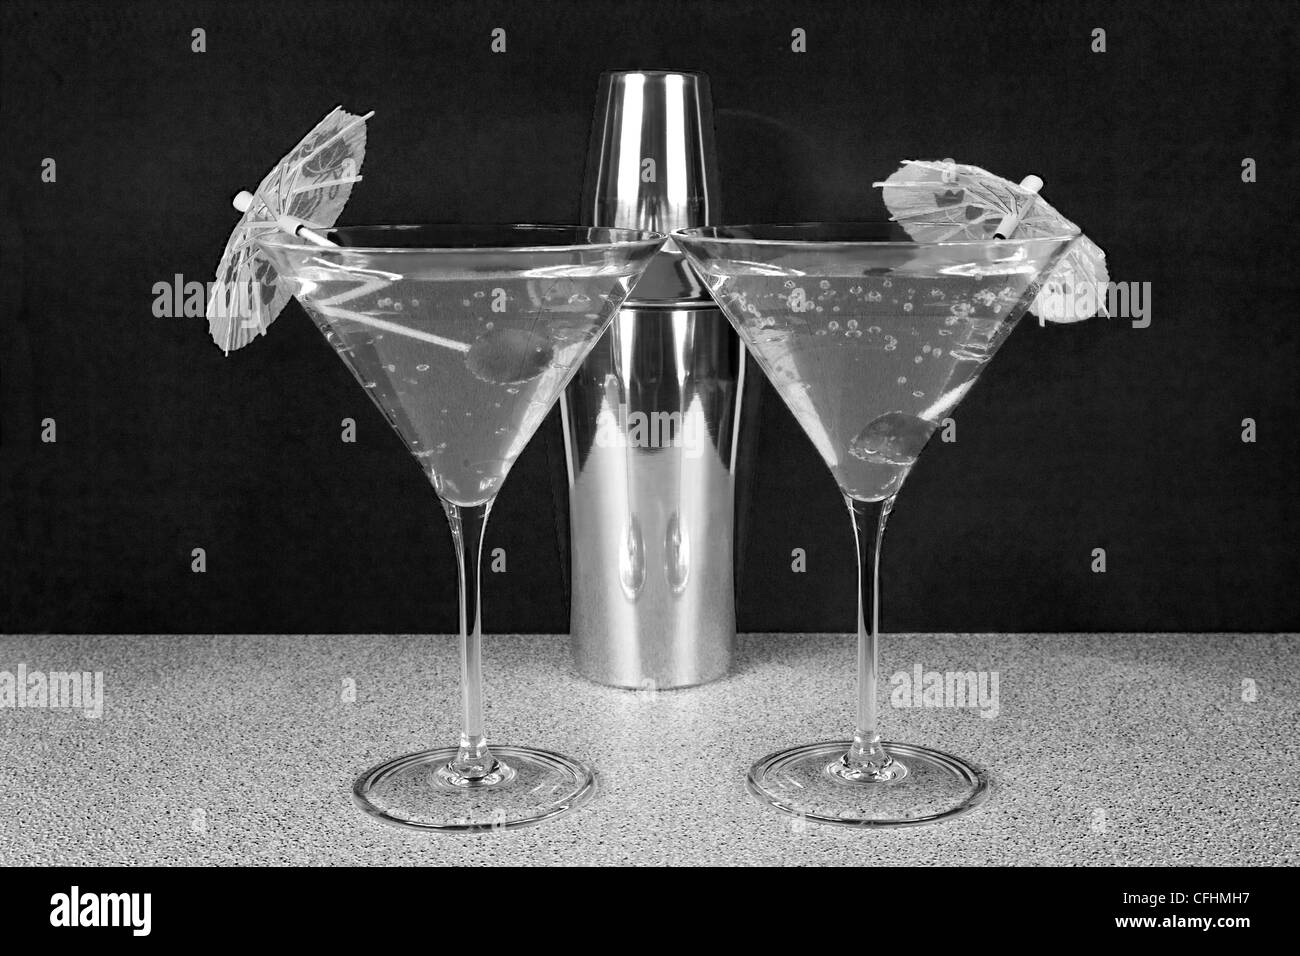 Cocktails for two - Stock Image